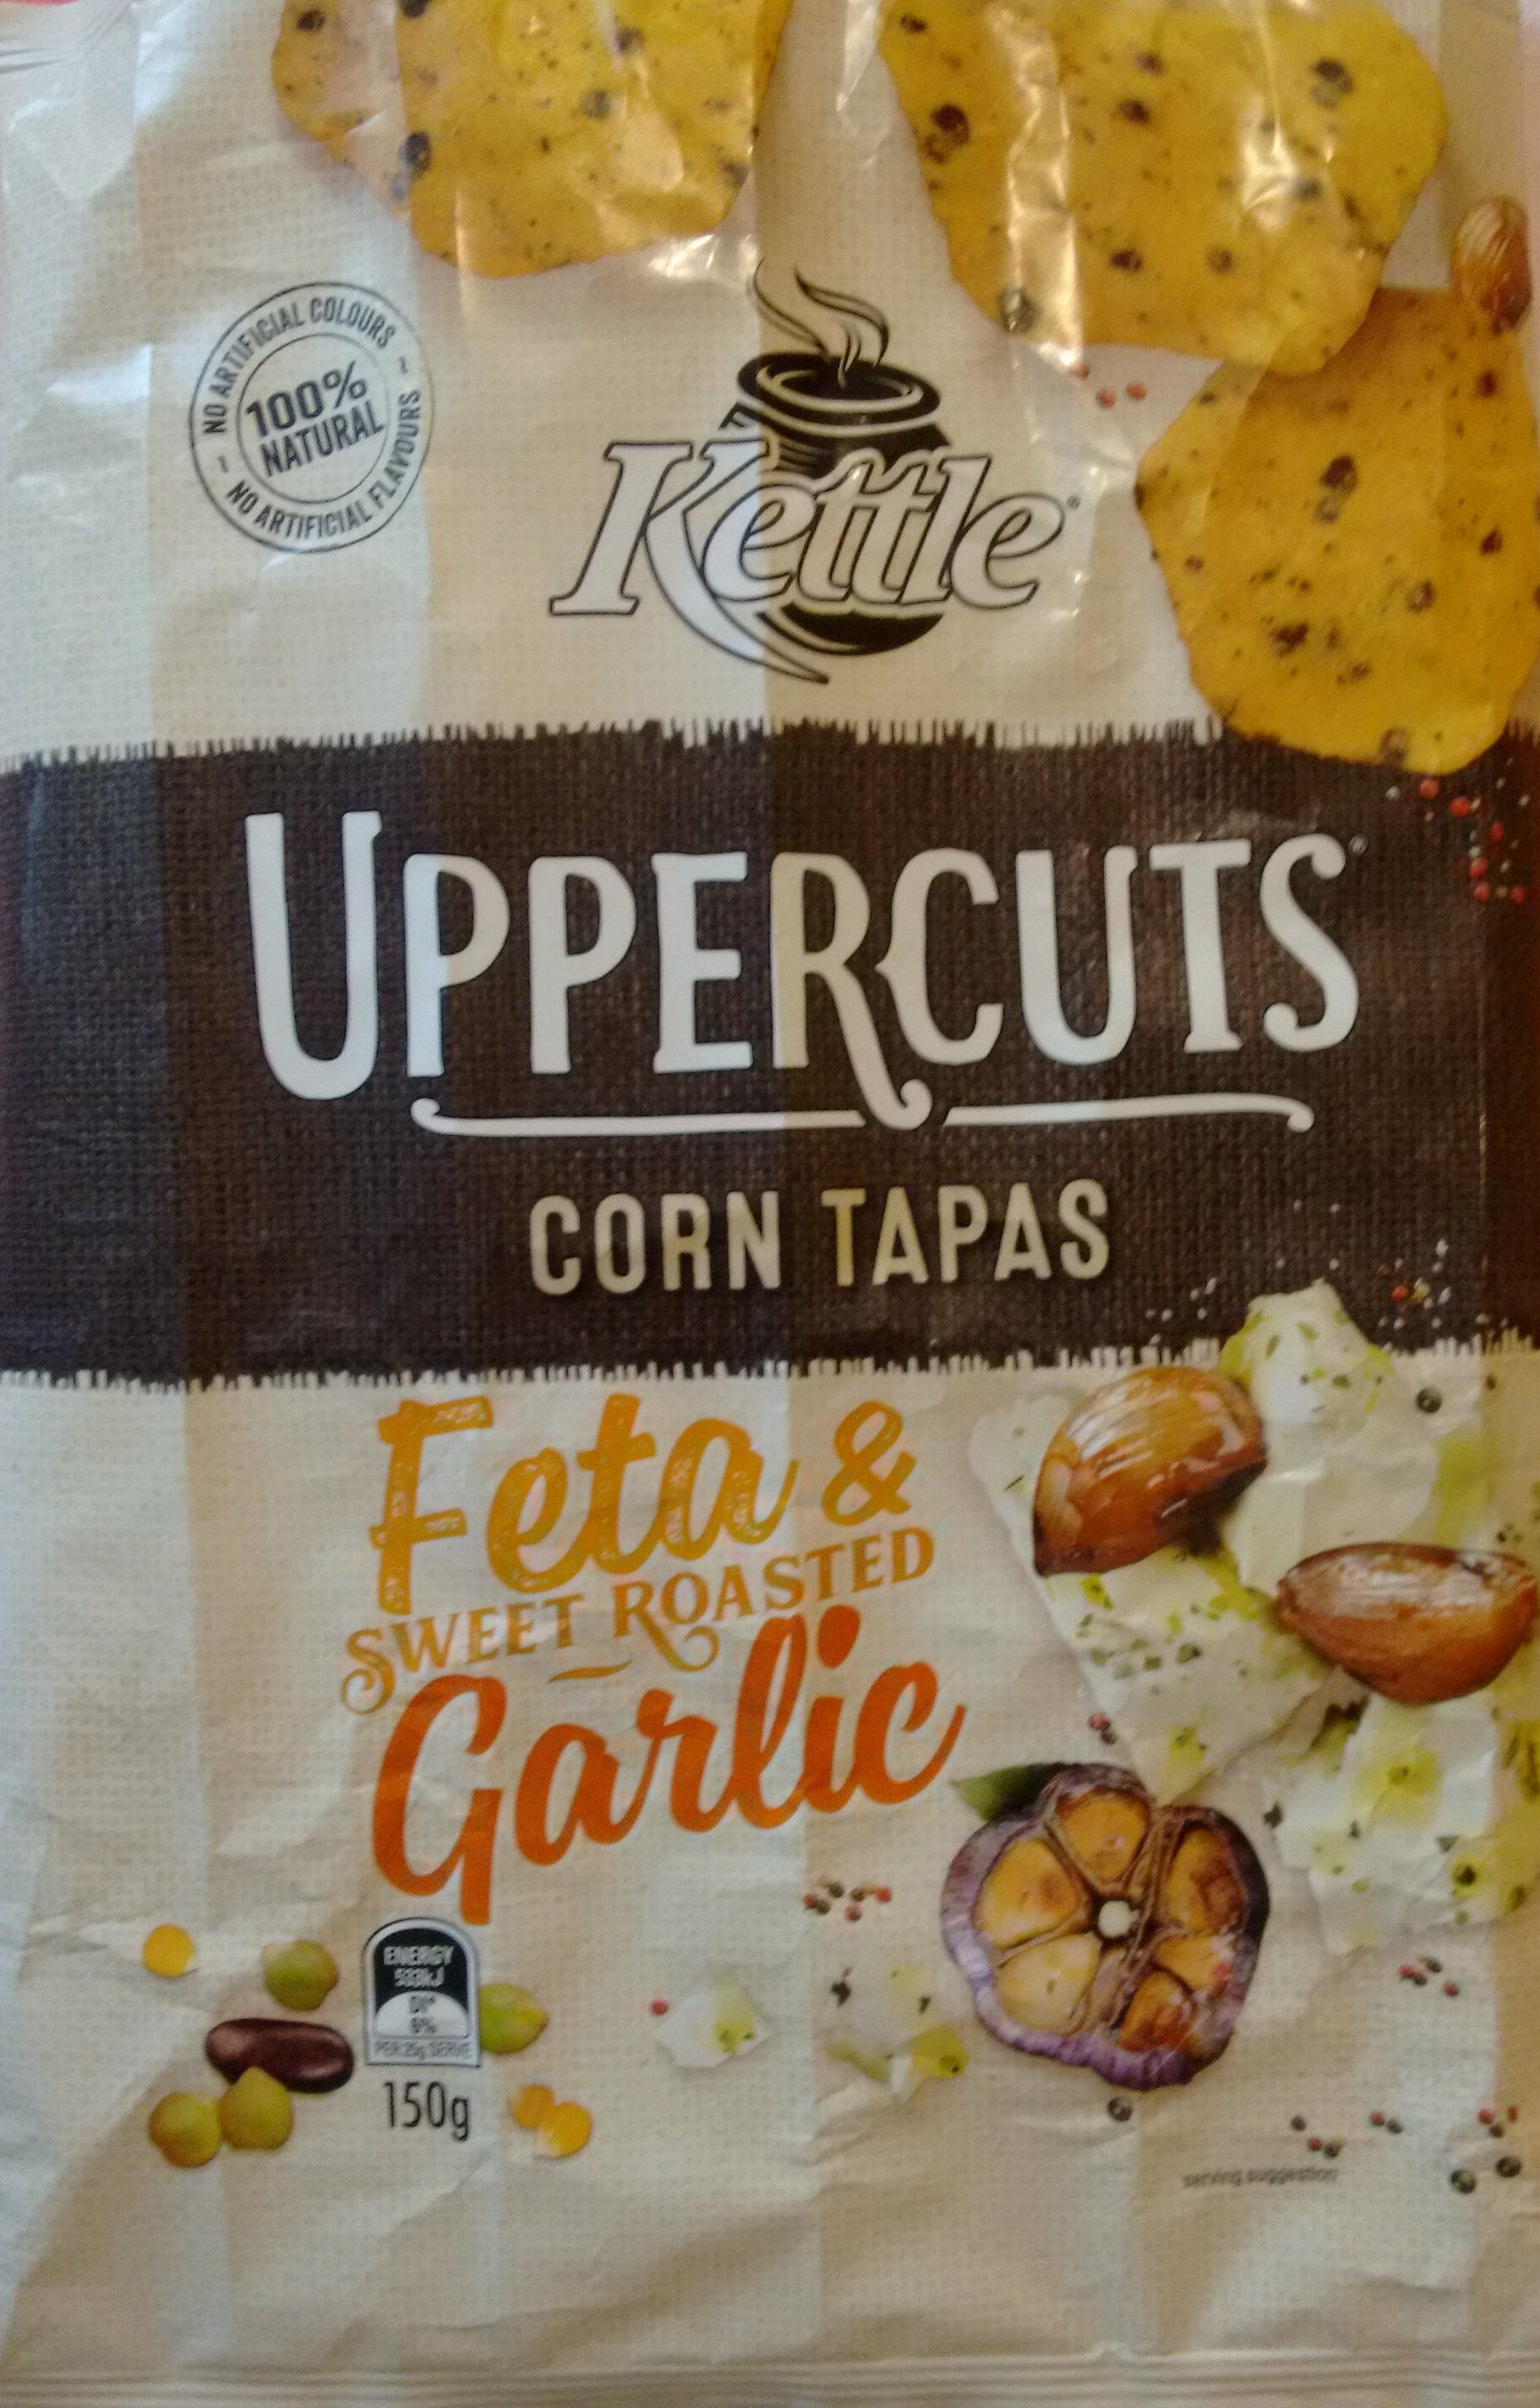 Uppercuts Feta & Roasted Garlic Flavoured Corn Chips - Product